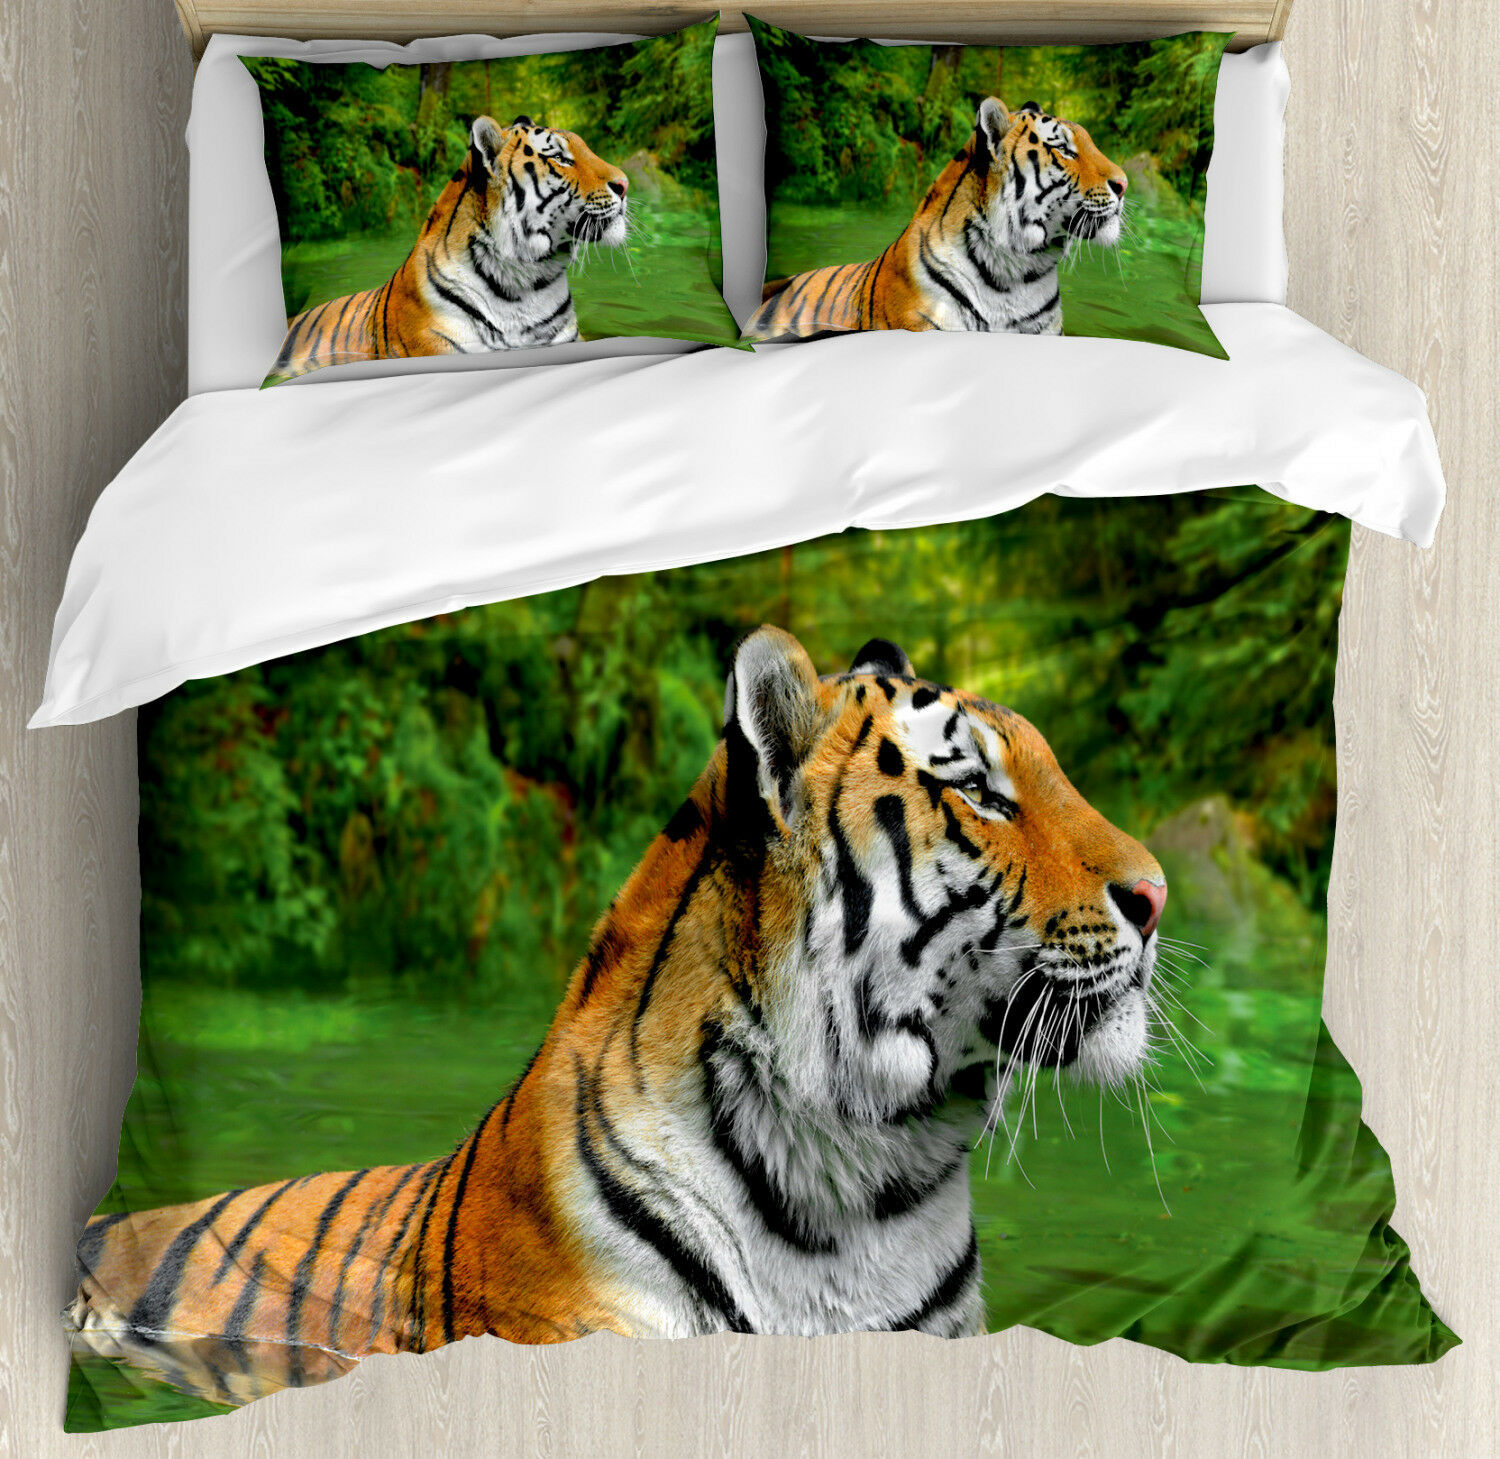 Tiger Duvet Cover Set with Pillow Shams Siberian Wild Cat in Lake Print